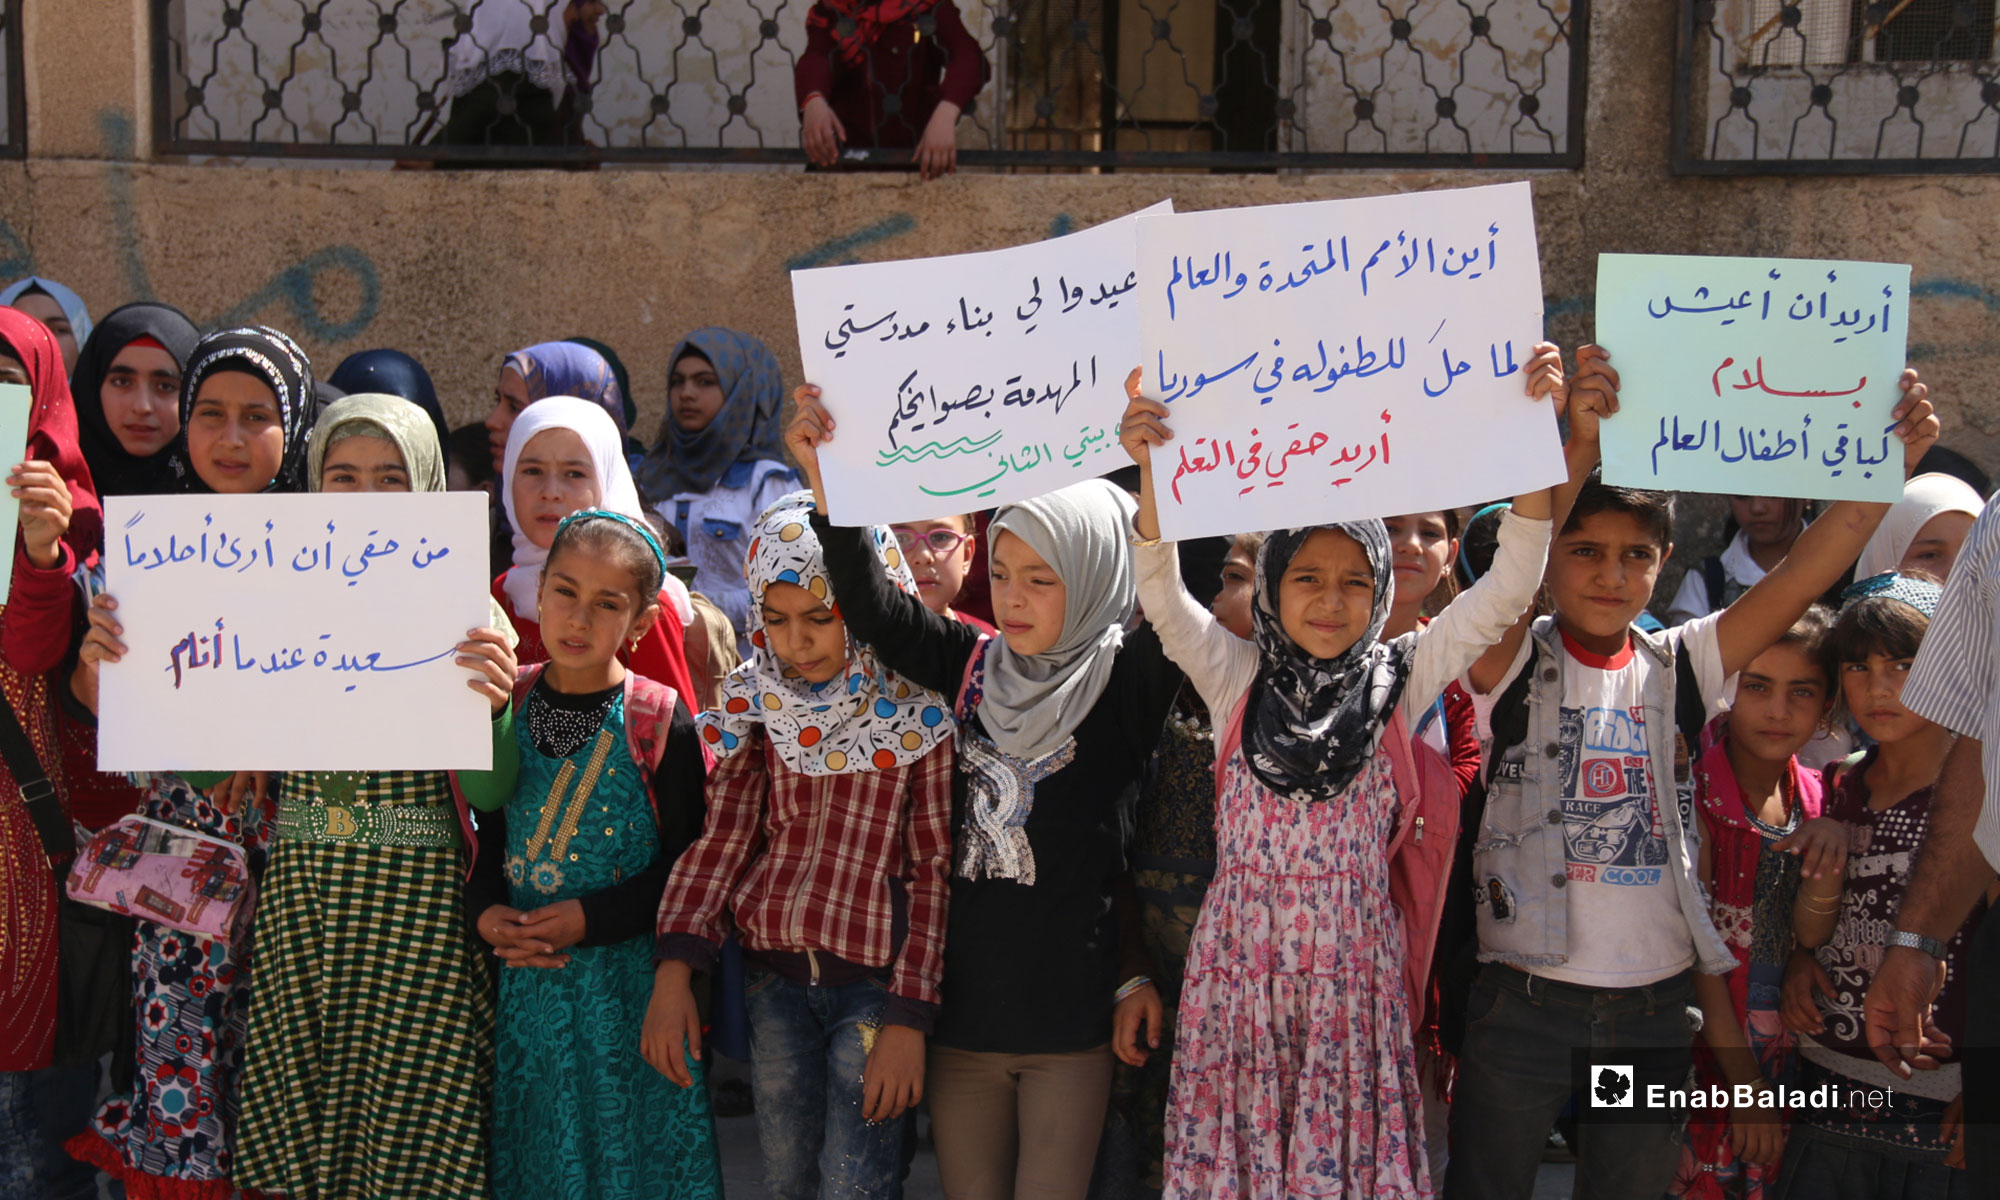 A protest organized by the educational staff of Kafr Oweid Town, rural Idlib, calling for the support of education in the liberated areas [Signs from left to right say: I have the right to see sweet dreams at sleep/ rebuild my school, destroyed by your missiles; my school is my second home/ Where are UN and the World in all that happened to childhood in Syria; my right to education/ I want to live in peace like the rest of the world's children] – September 19, 2018 (Enab Baladi)